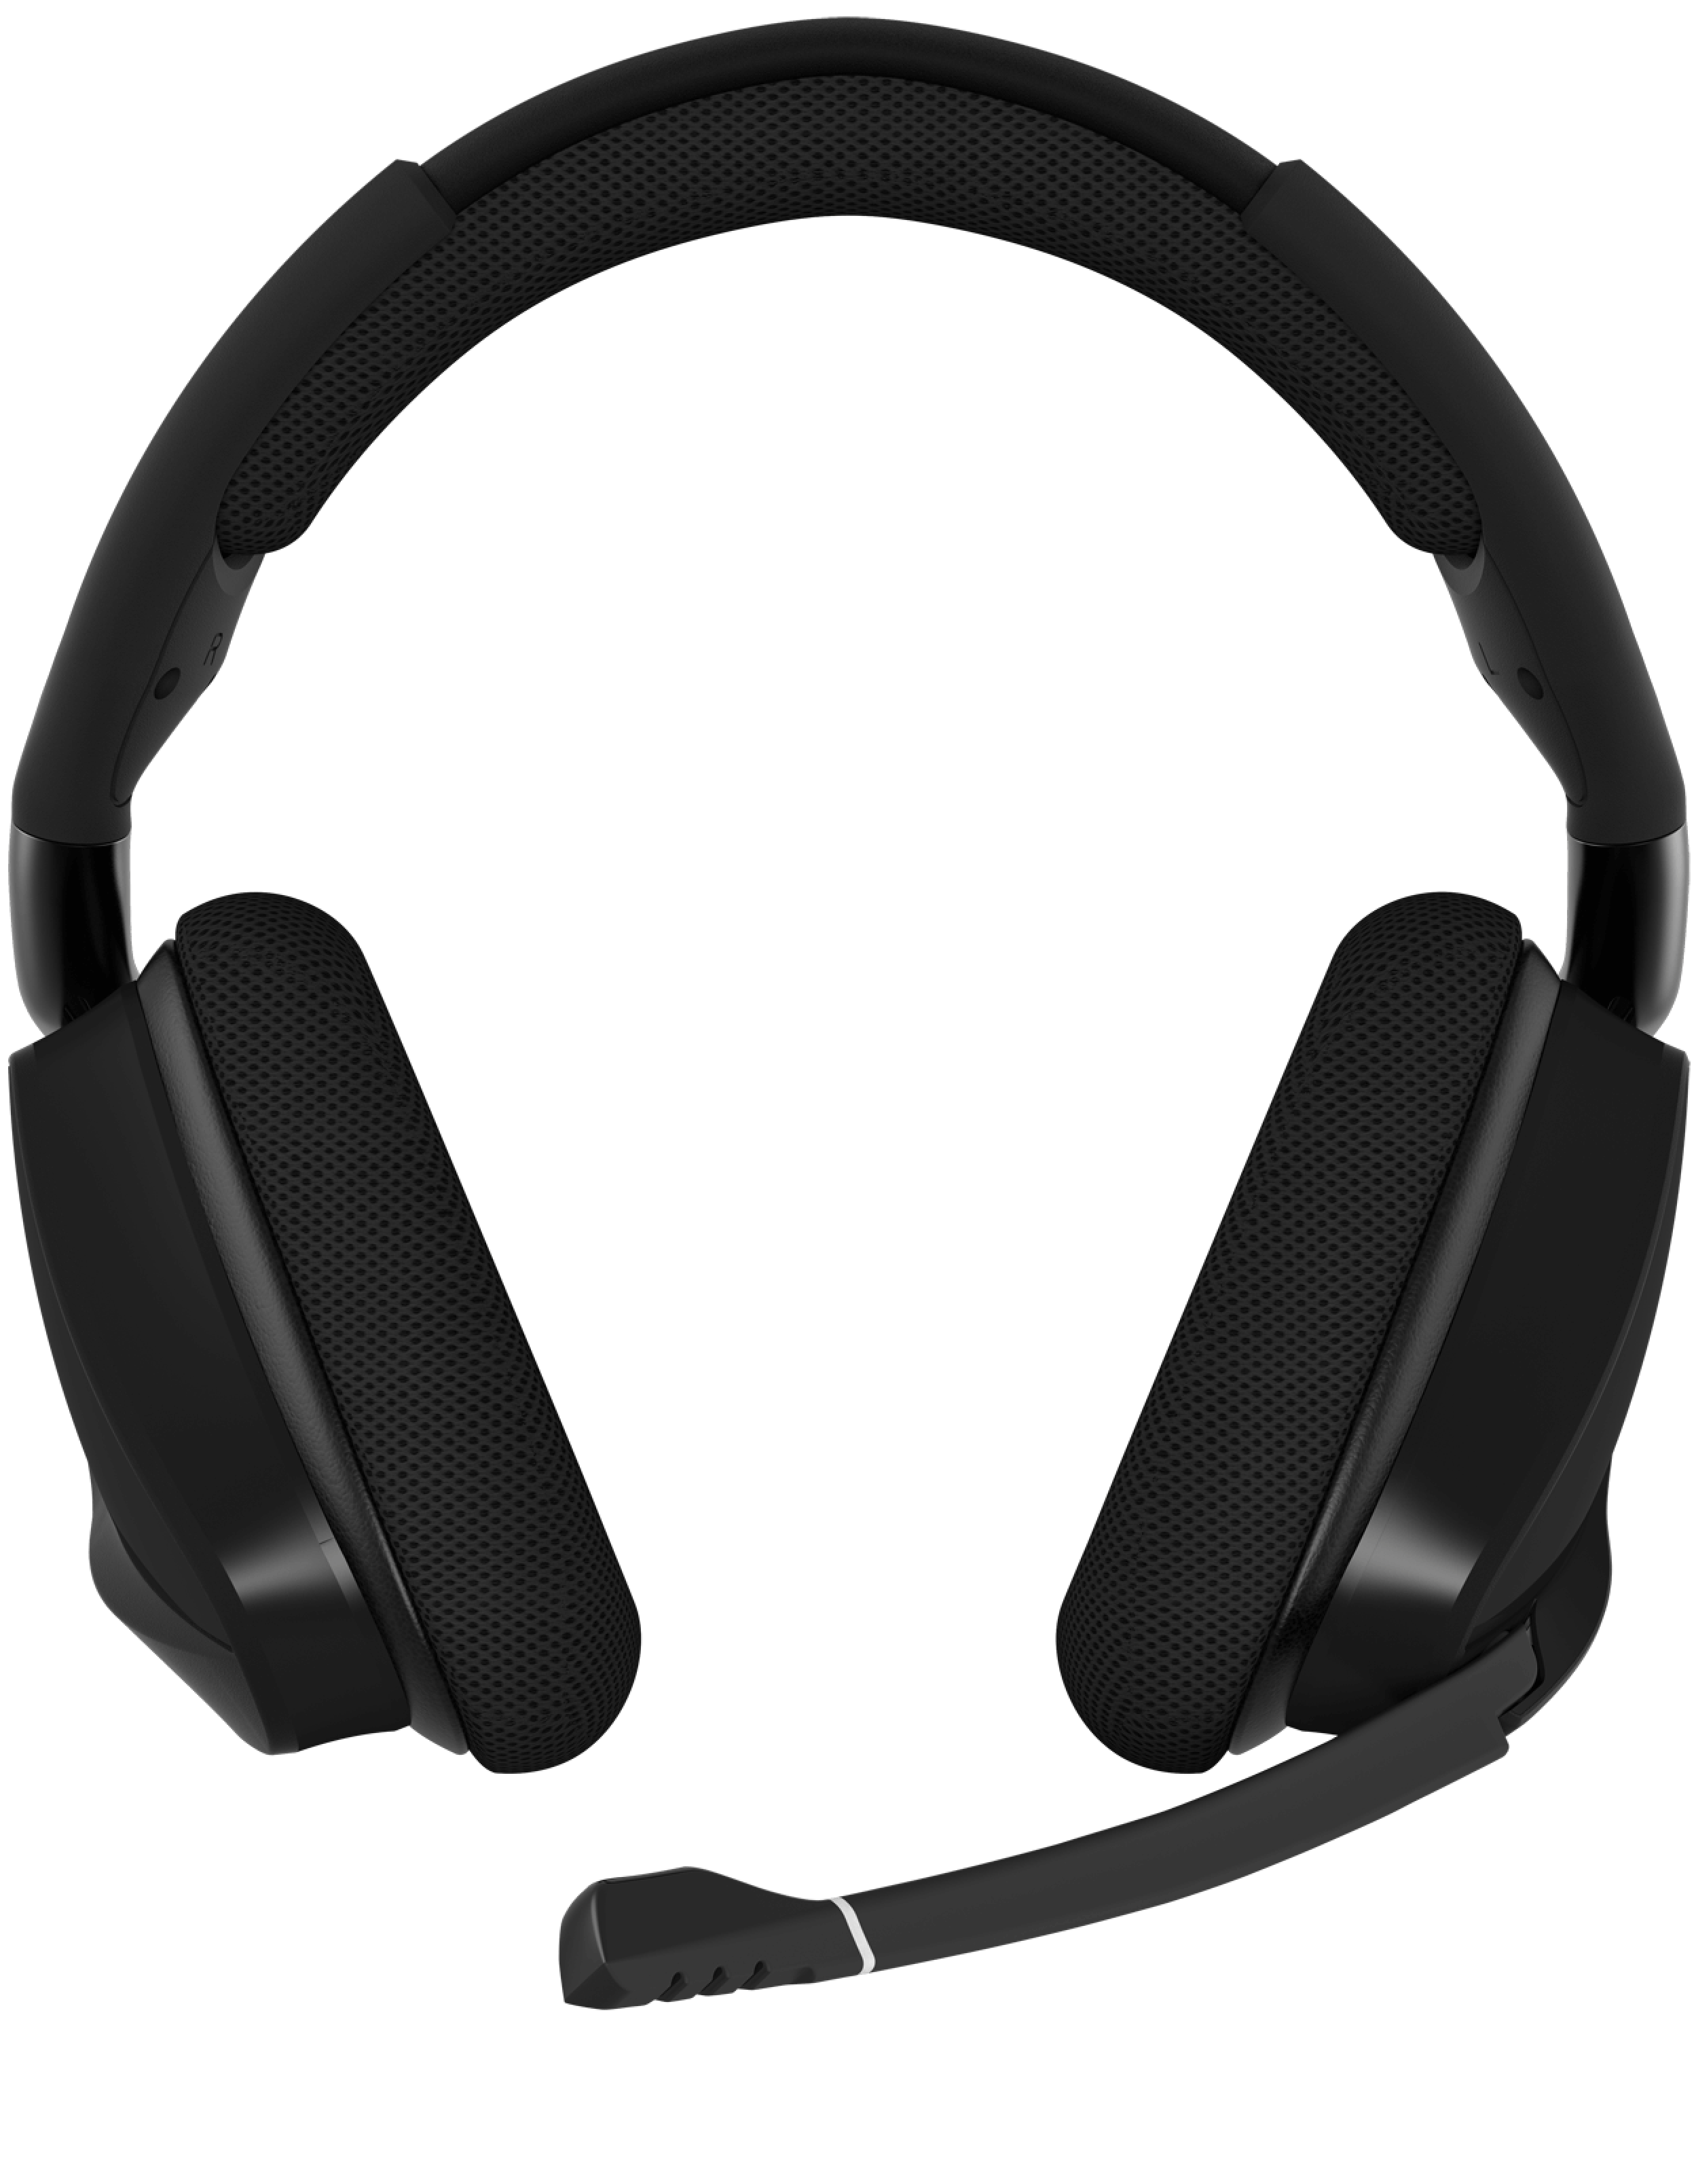 Customisable RGB Lighting, Low Latency 2.4 Ghz Wireless, 7.1 Dolby Surround Sound, Optimised Unidirectional Microphone White Corsair Void Pro RGB Wireless Gaming Headset